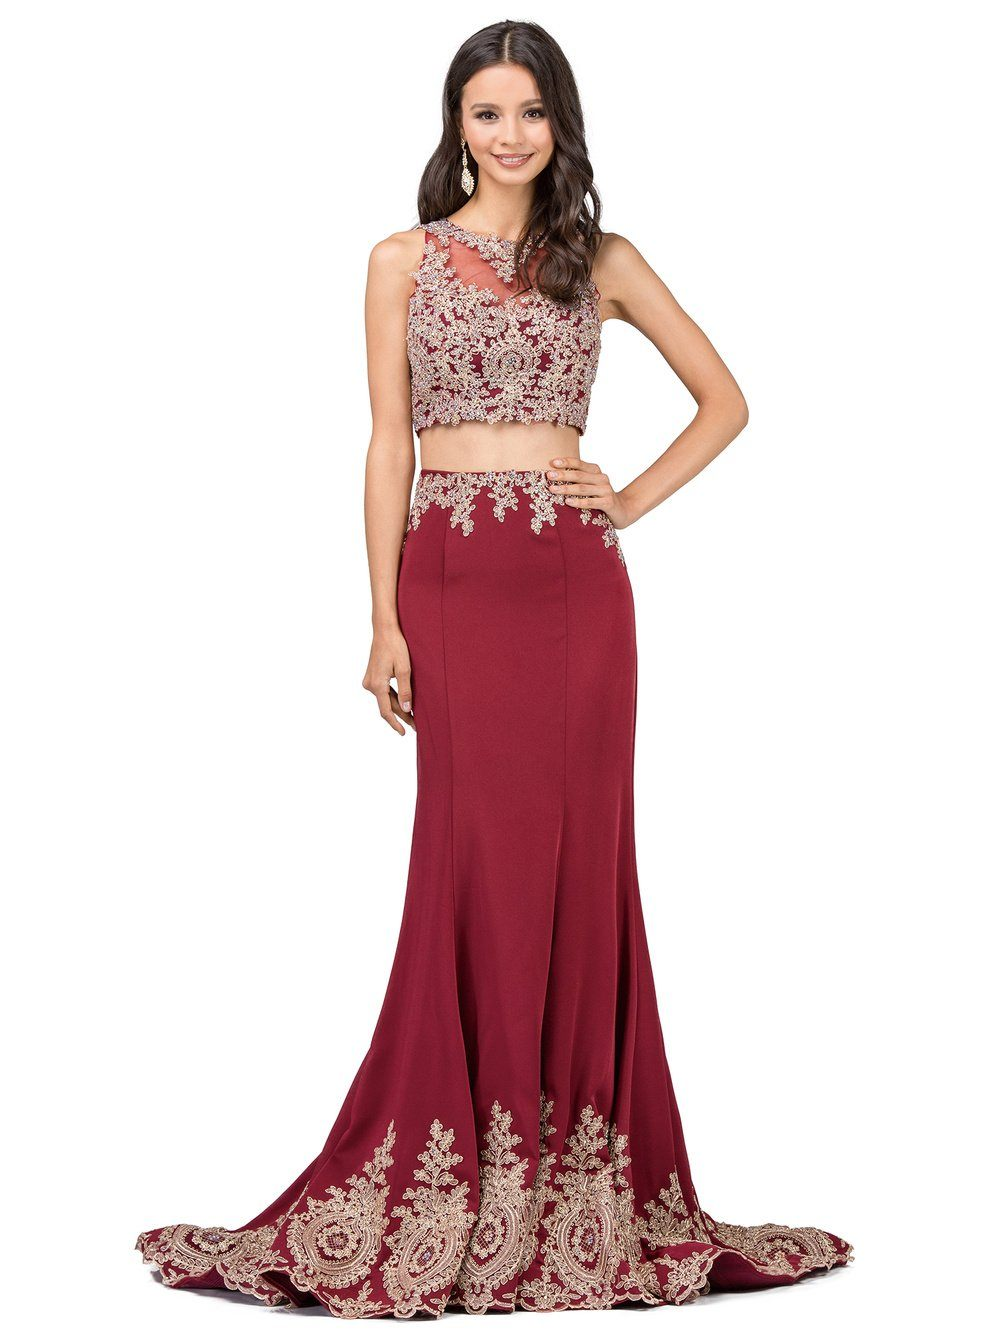 Two Piece Mermaid Prom Dress With Illusion Gold Lace Dq9391 Simply